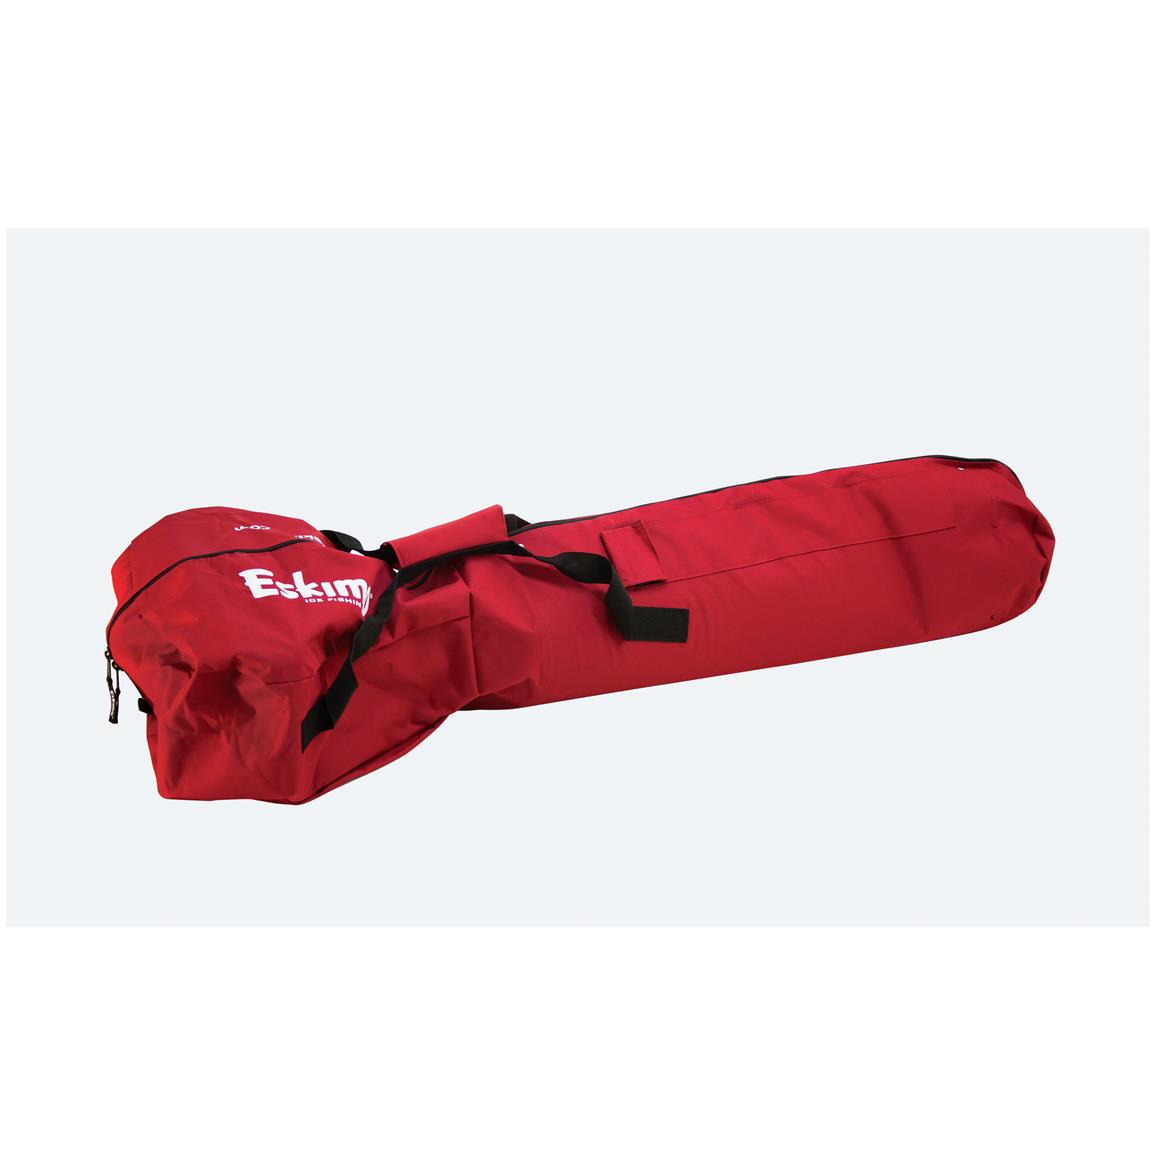 Eskimo Power Ice Auger Carrying Bag